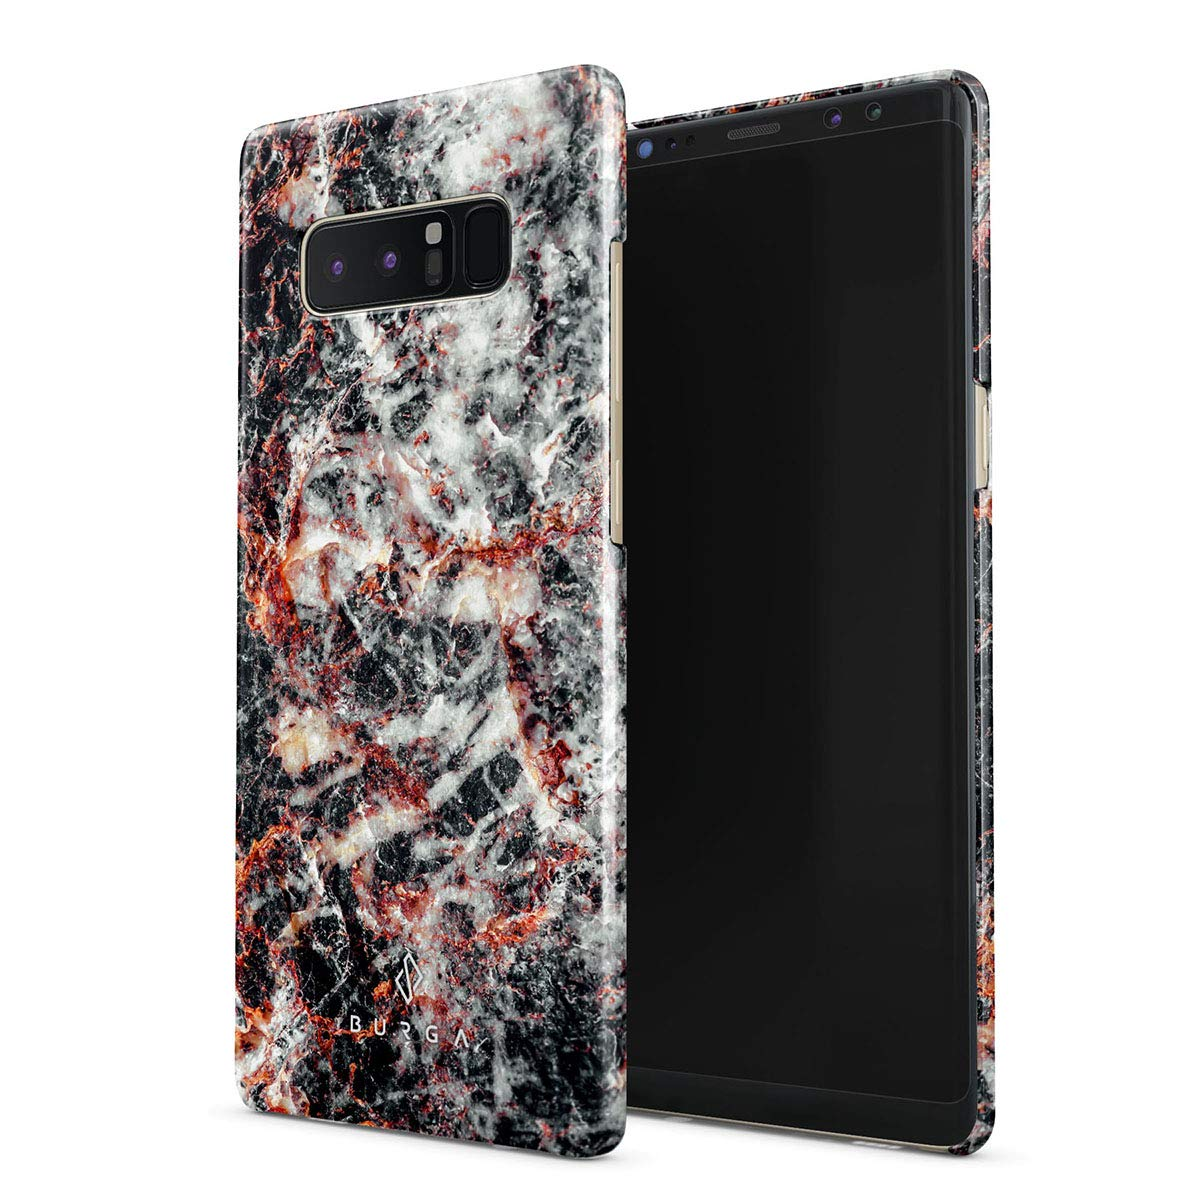 BURGA Phone Case Compatible with Samsung Galaxy Note 8 - Volcano Island Lava Fire Black Marble Cute Case for Girls Thin Design Durable Hard Shell Plastic Protective Case